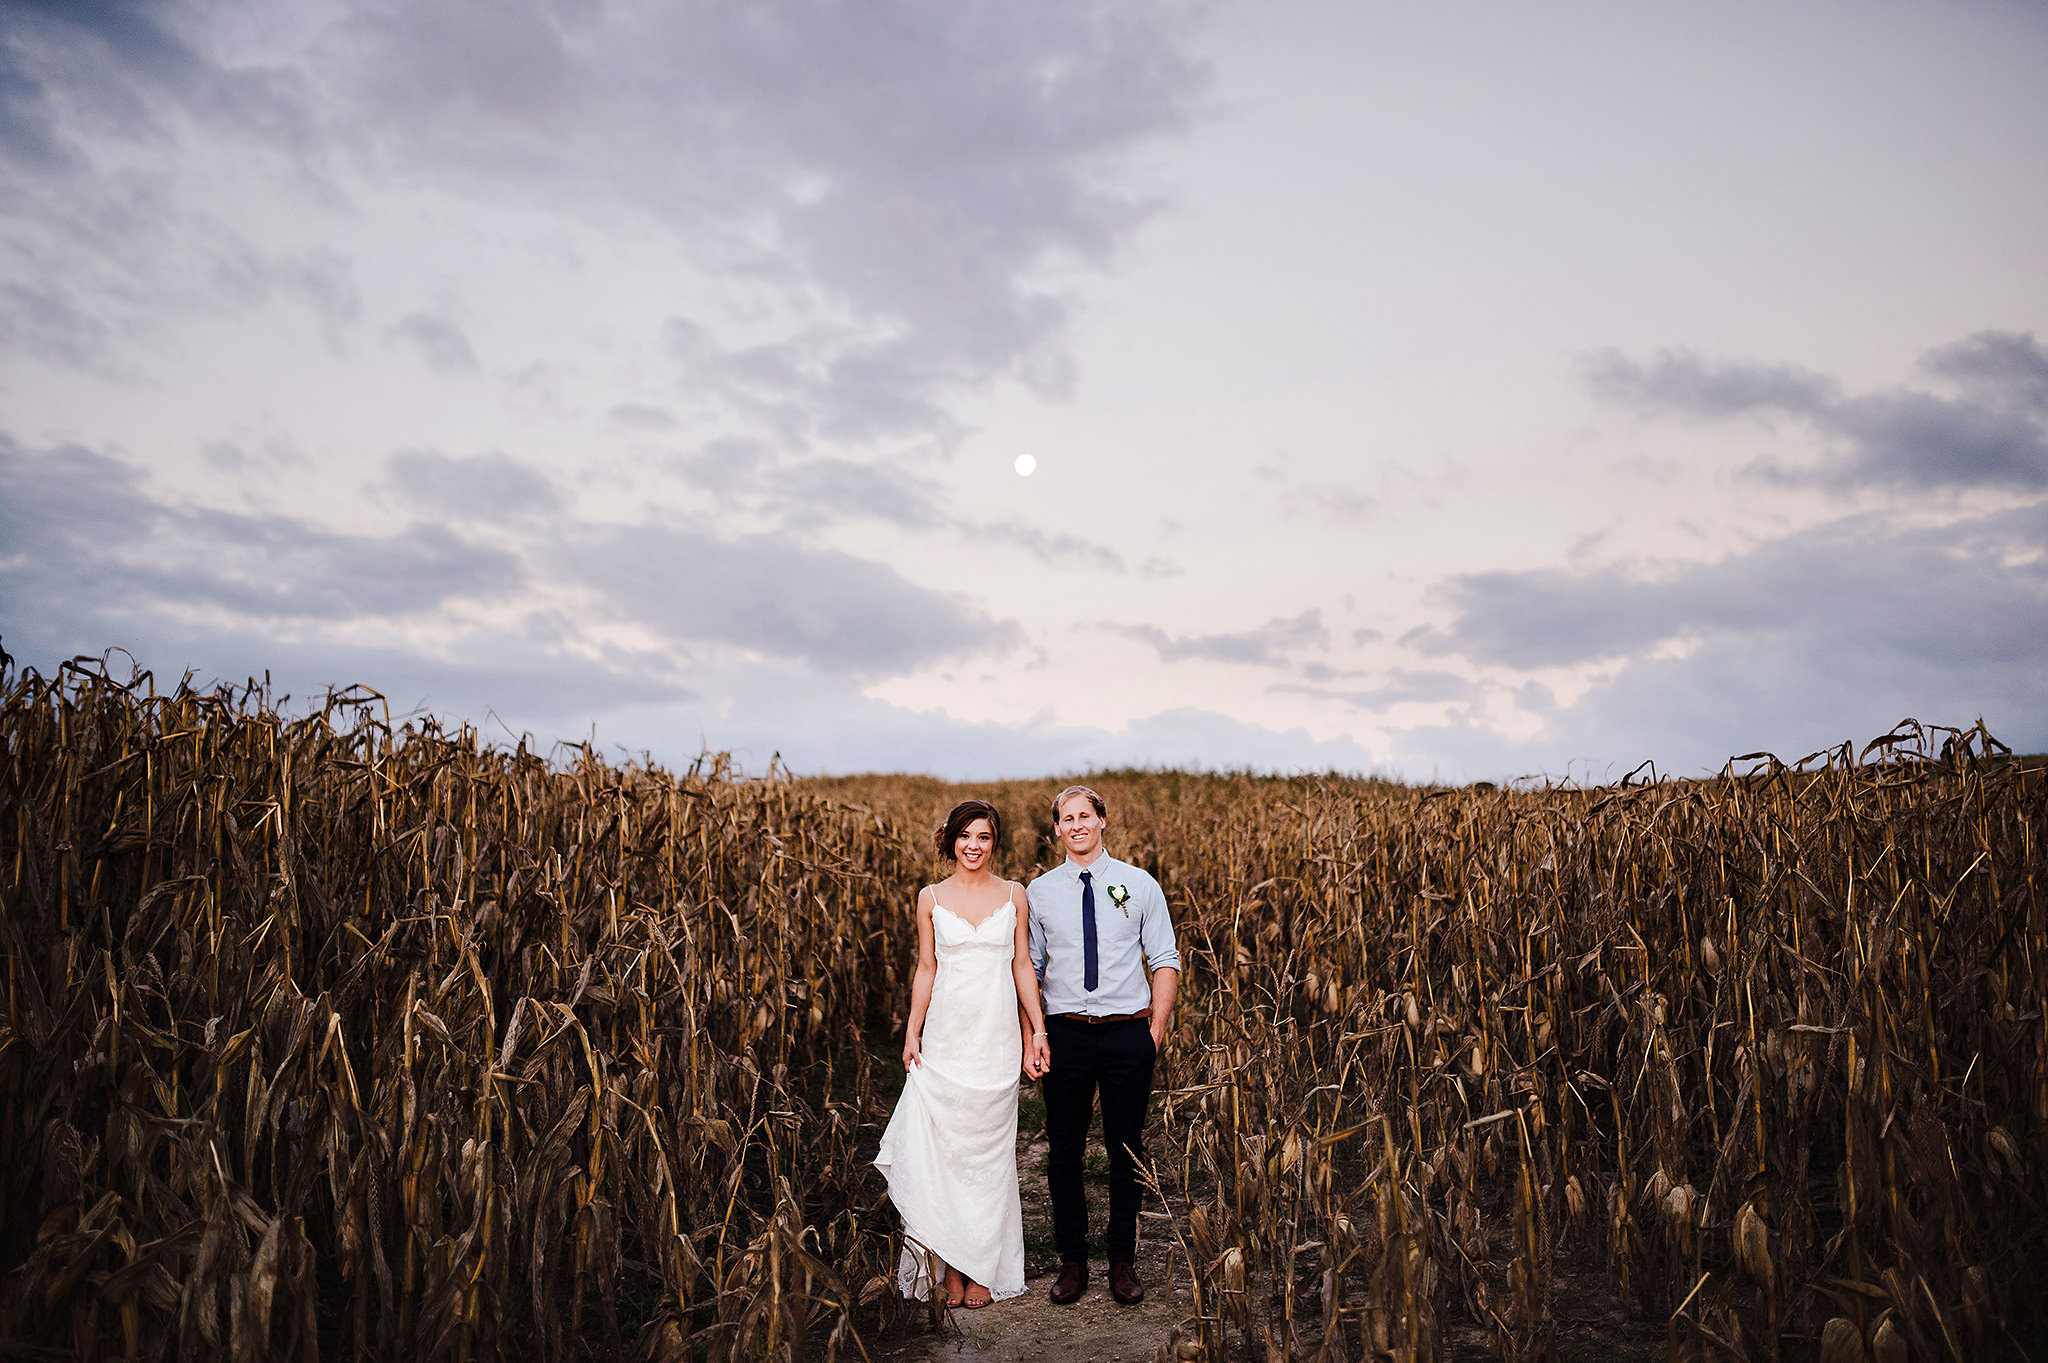 auckland wedding photographer cornfield at dusk.jpg